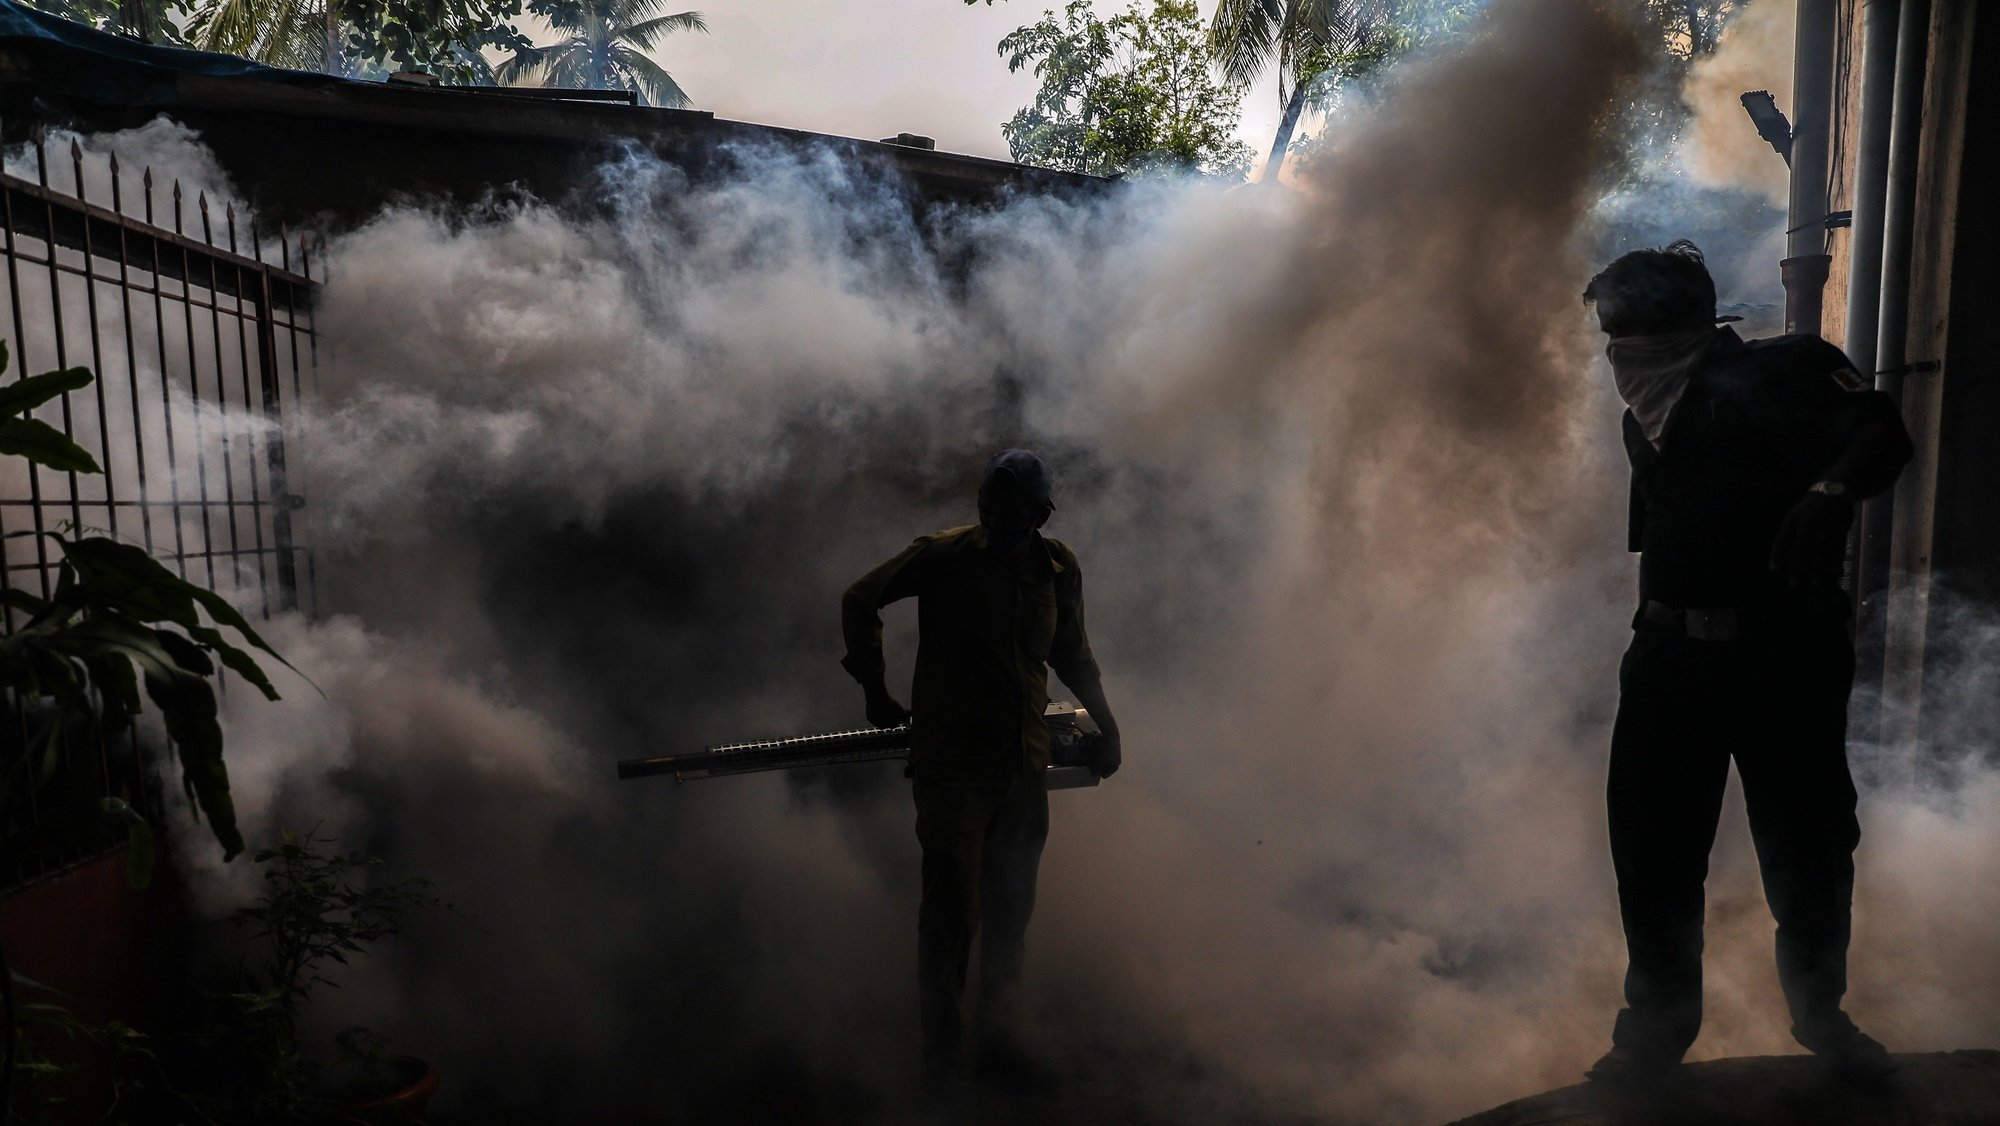 epa08570594 A municipal worker wearing a face mask uses an anti-malaria fumigation spray machine at a residential area in Mumbai, India, 28 July, 2020. The measure is regularly taken by the municipal corporation to try to avoid any kind of diseases caused by mosquitoes. The workers, reportedly, fumigate in all areas of the city, from slum to high rise residential buildings, from shops to sewage canals, ponds and puddles in the streets.  EPA/DIVYAKANT SOLANKI